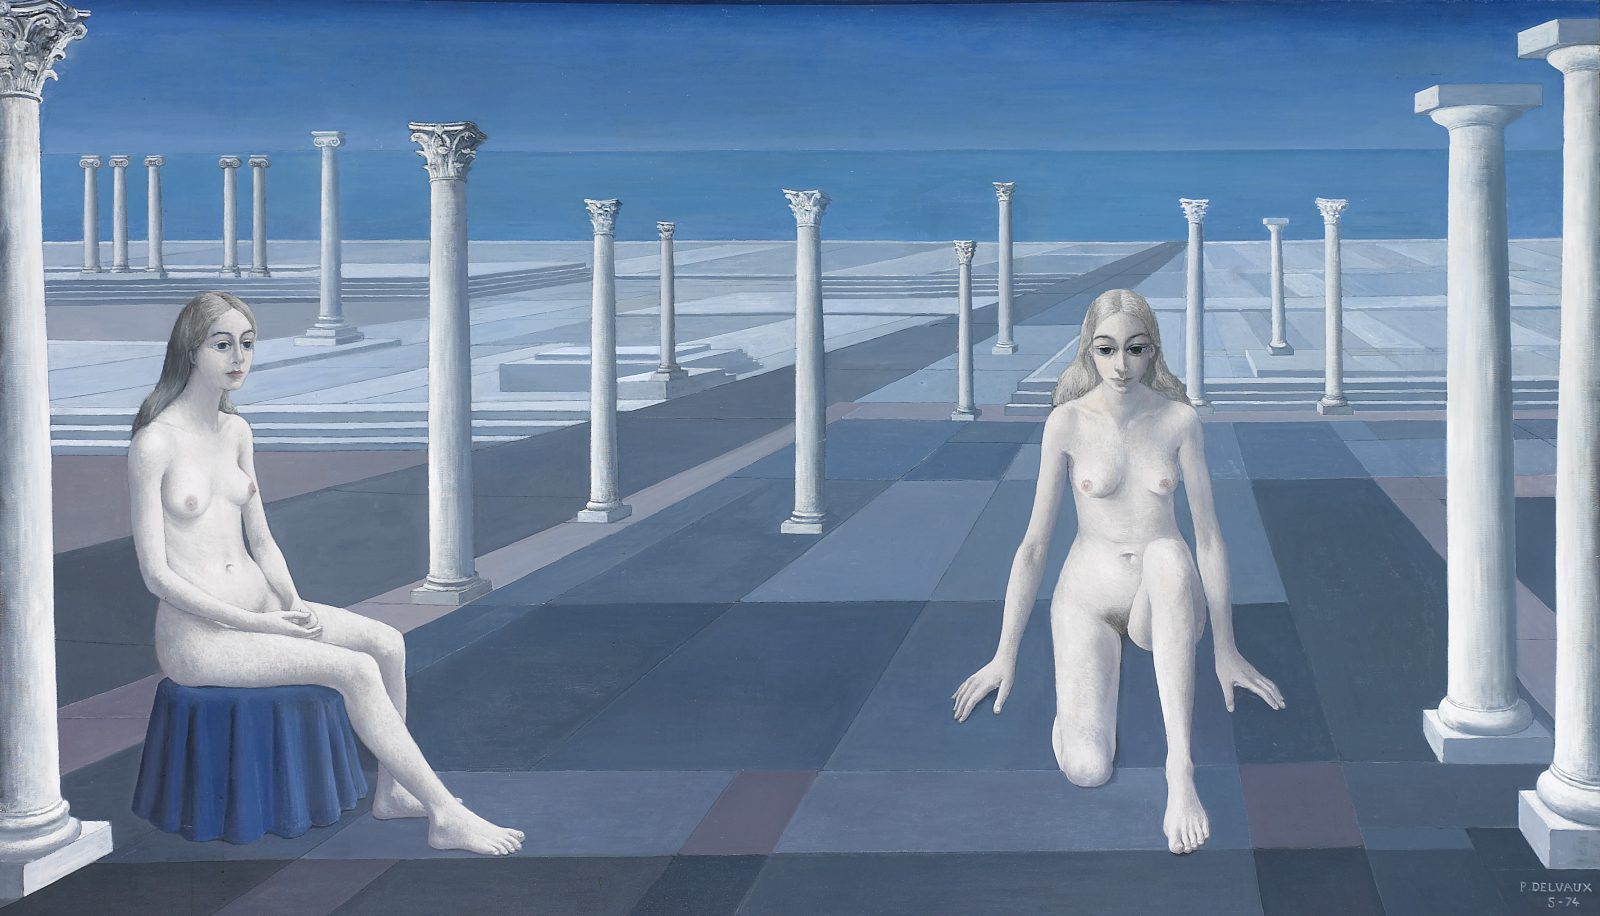 Evian Paul Delvaux, Le Dialogue, 1974 © Adagp, Paris 2017